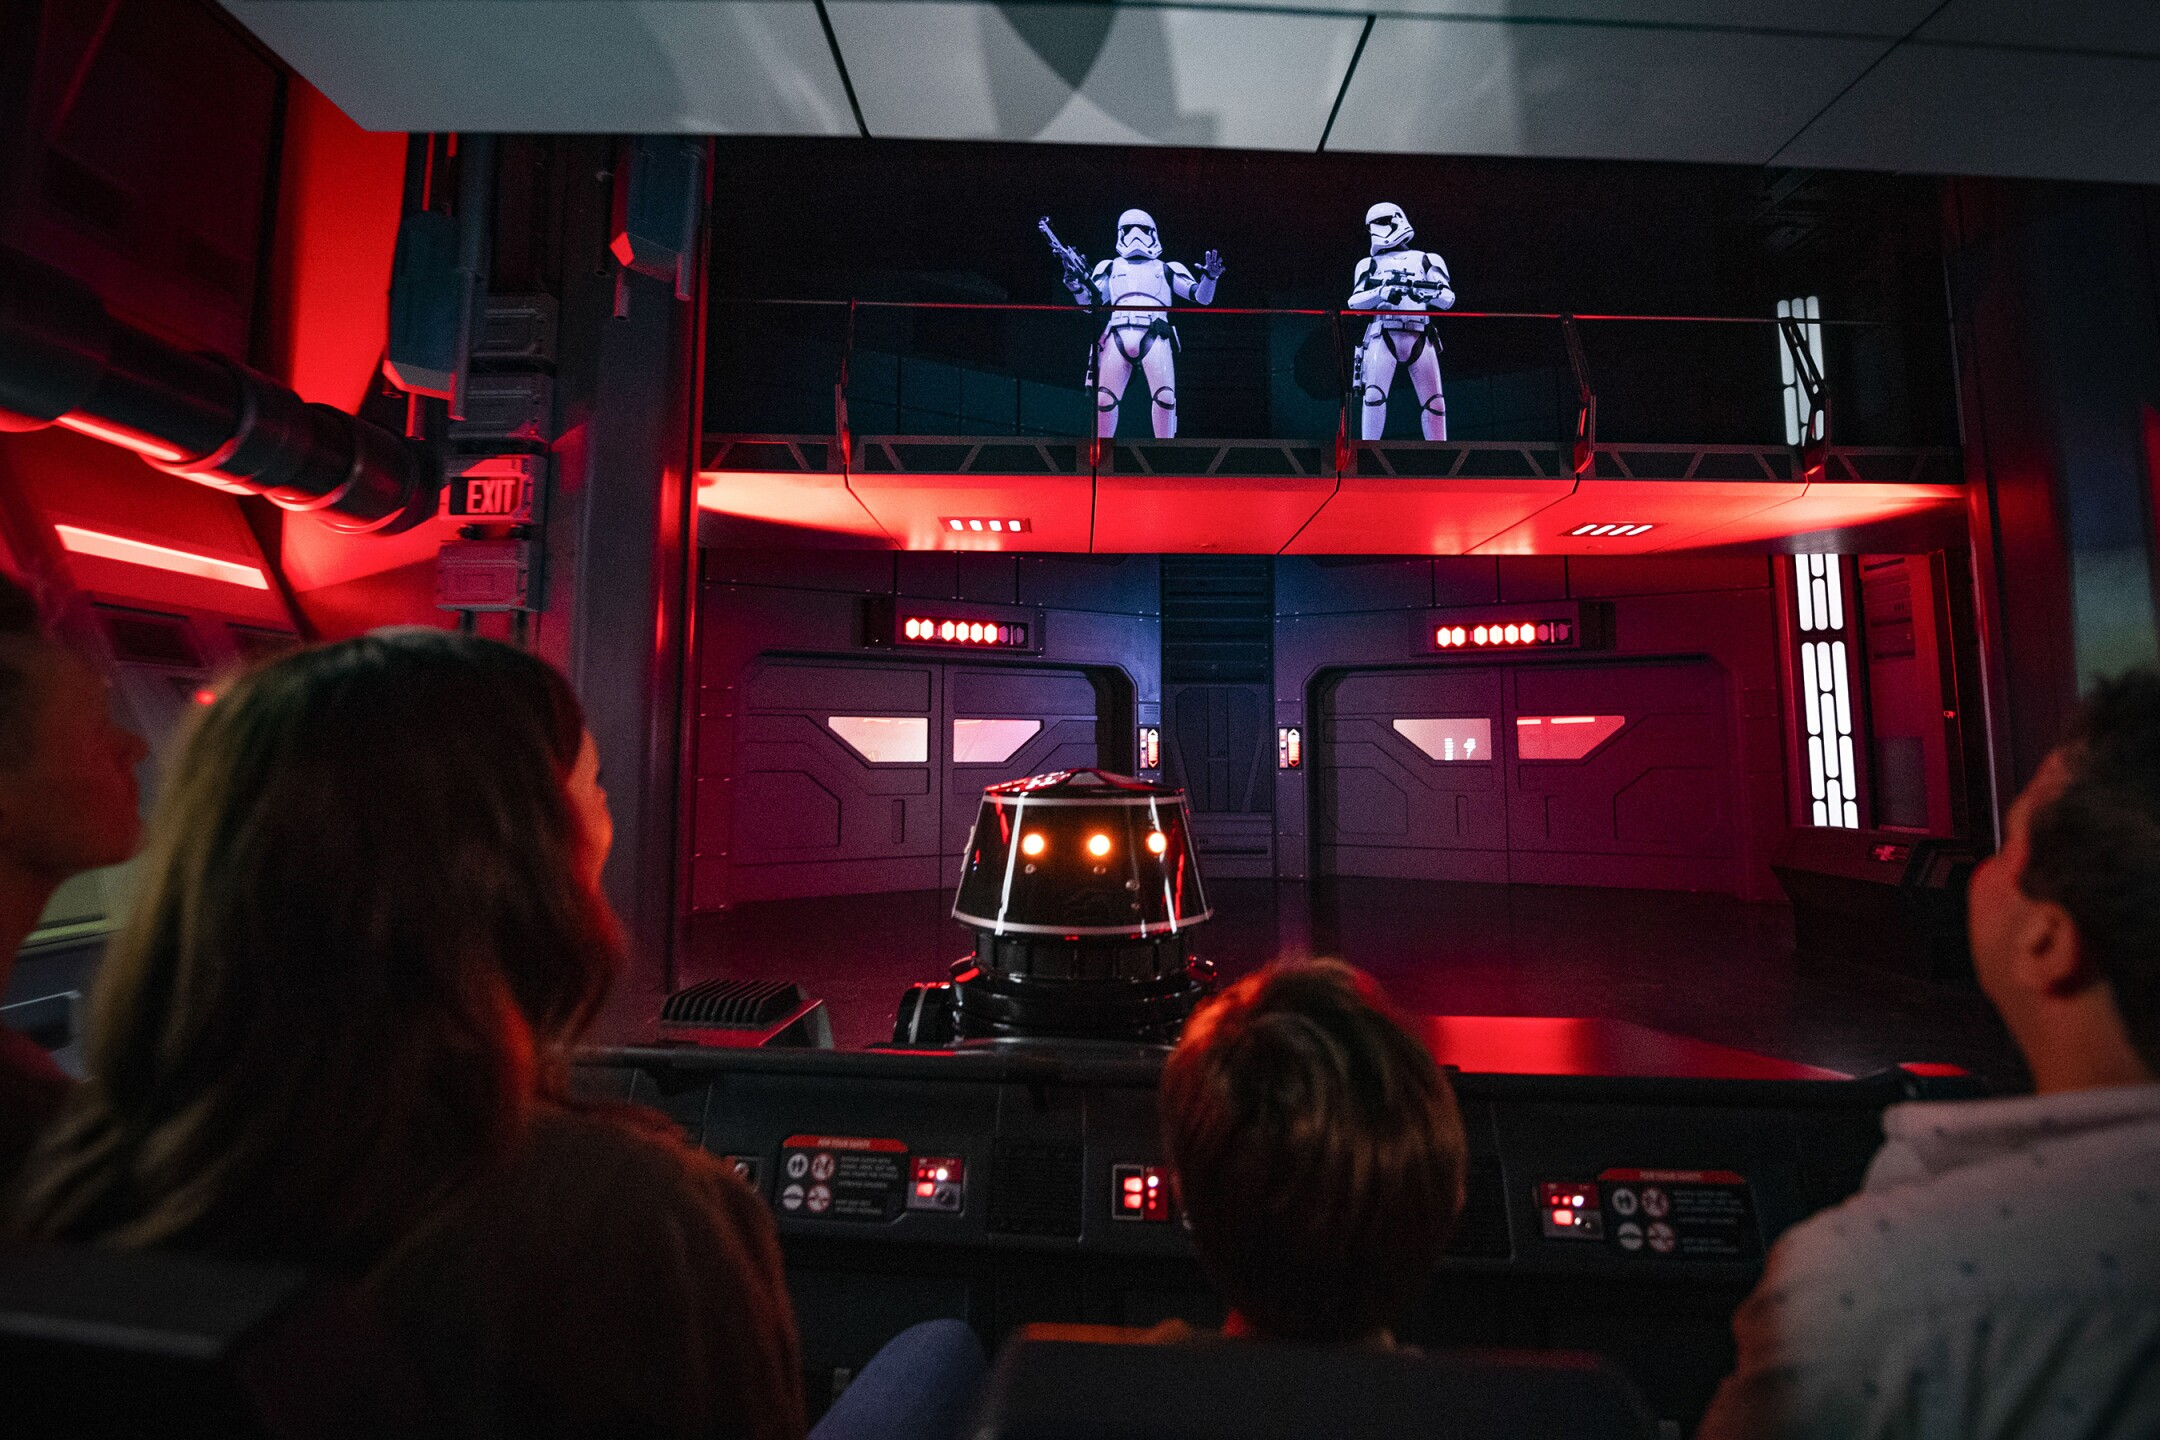 Photos: Star Wars' Rise of the Resistance, Disney's new ride, takes attraction to a whole newlevel